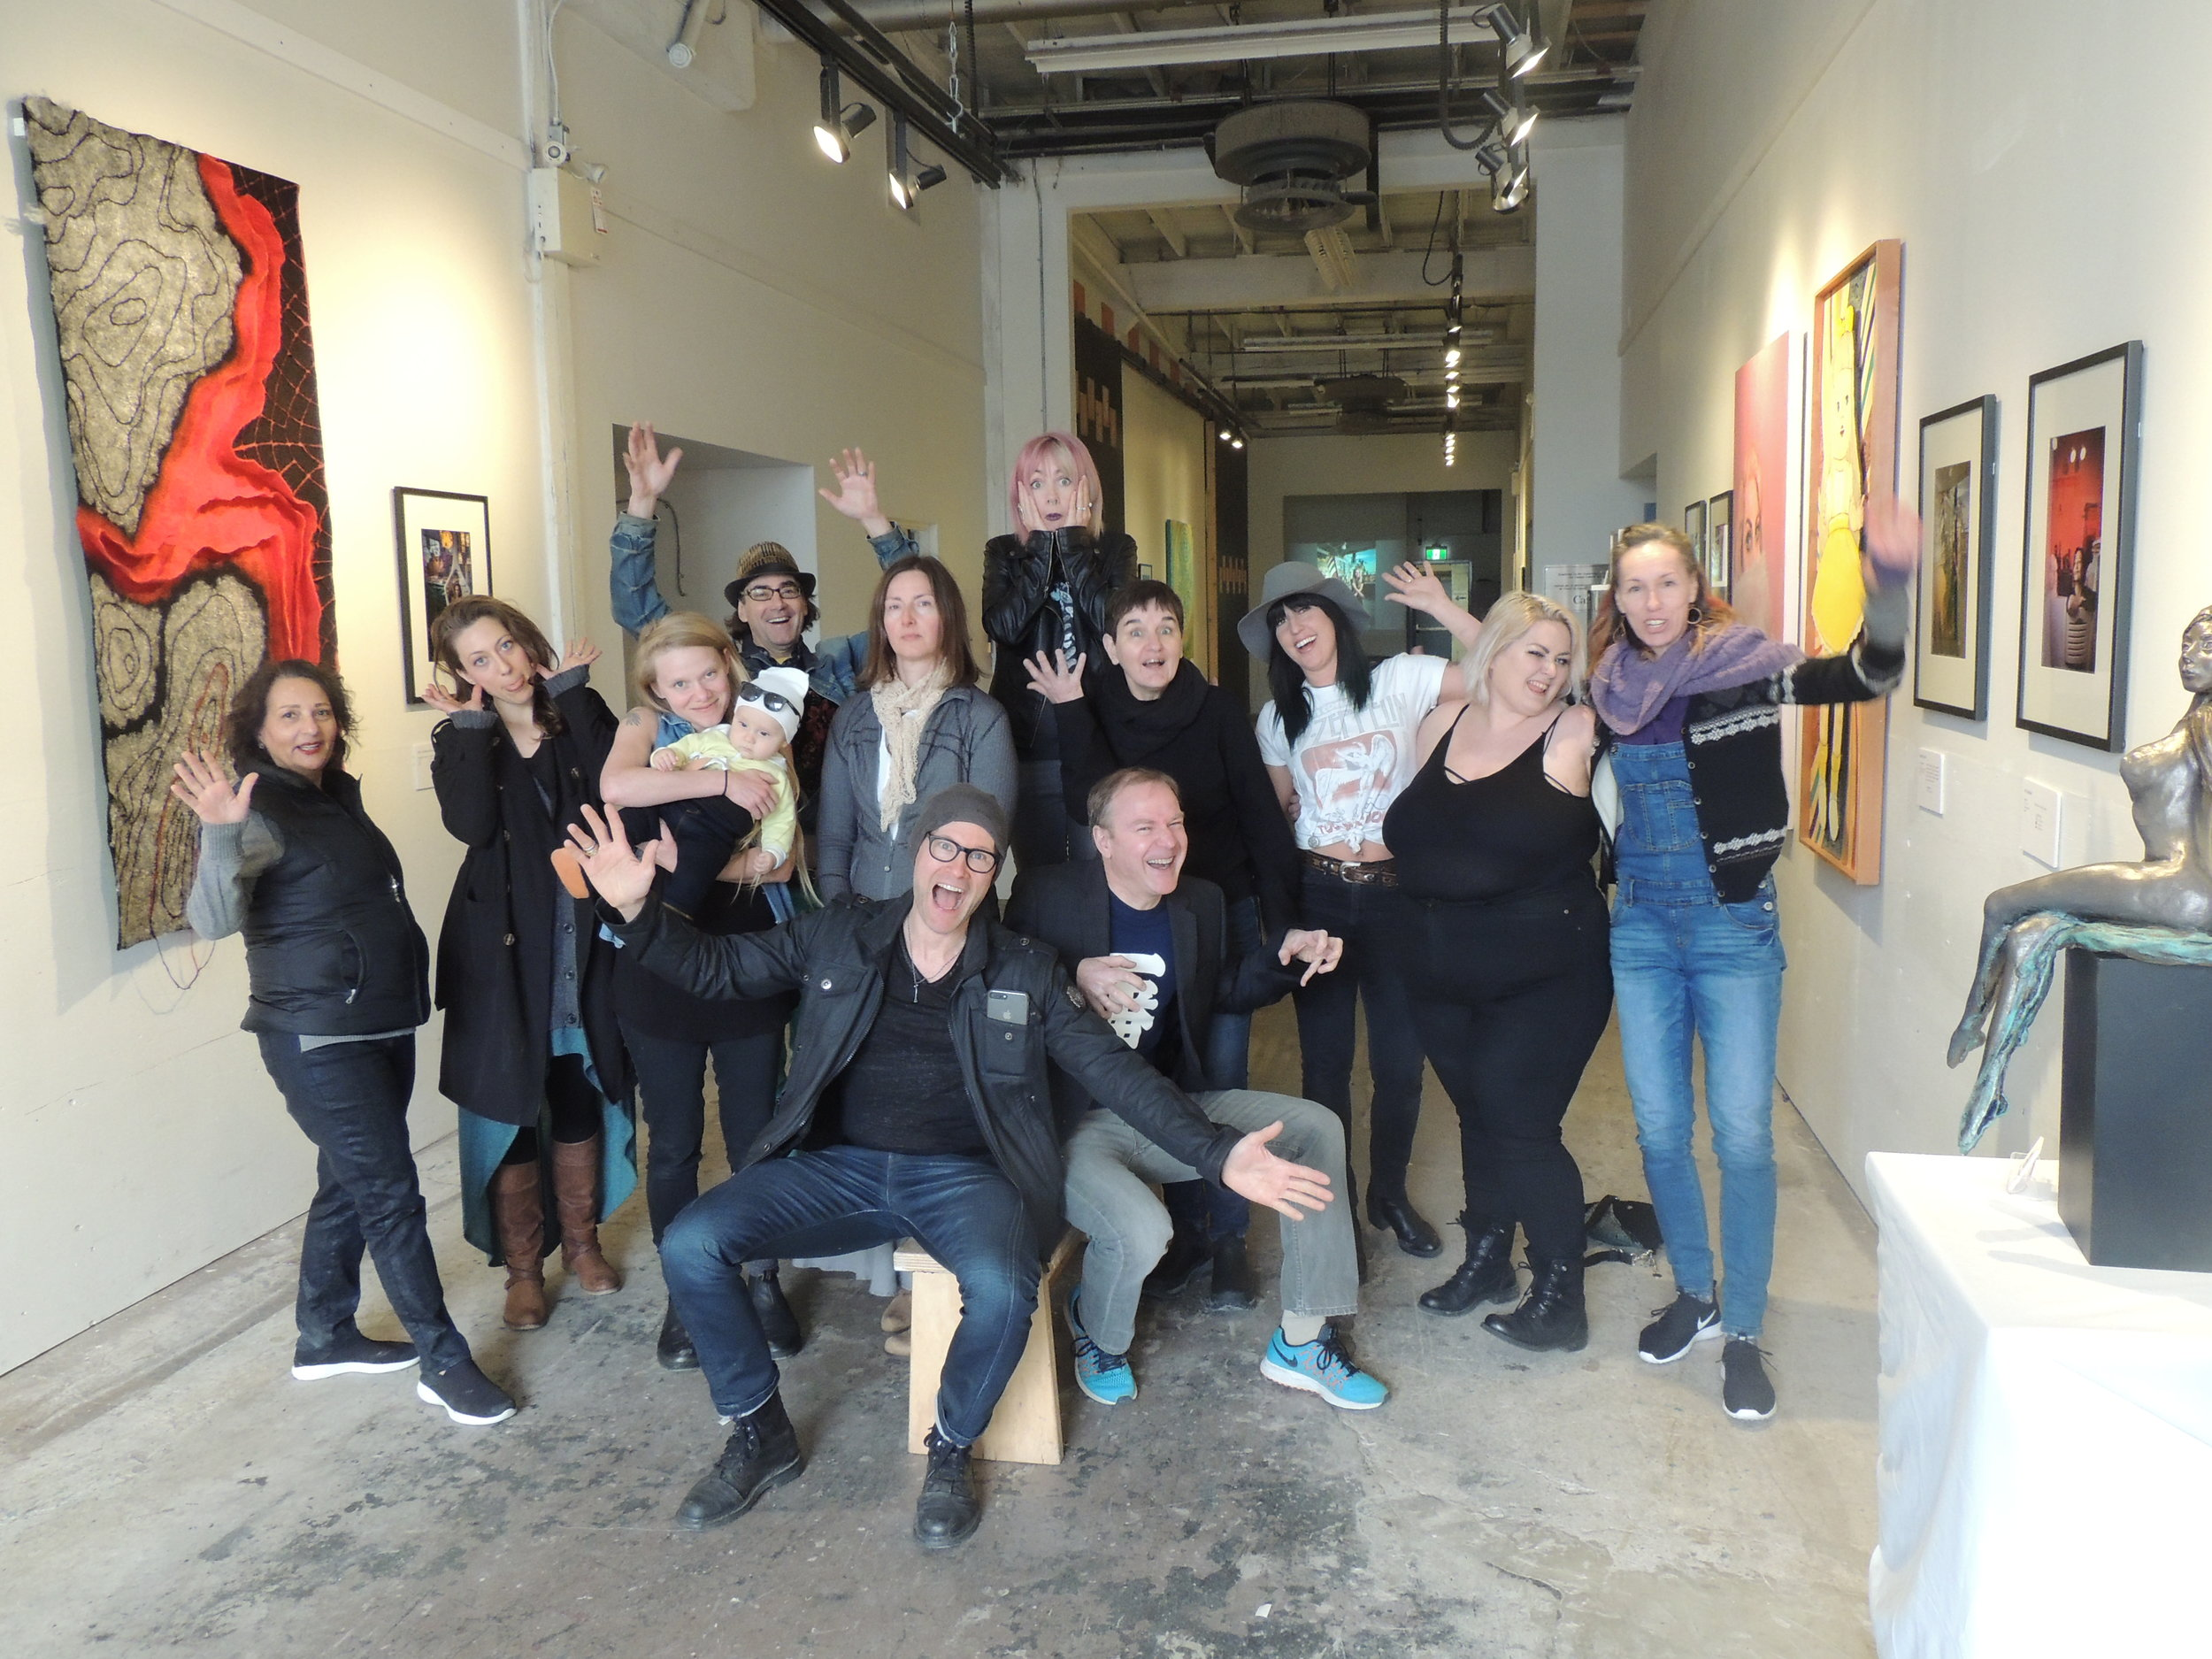 Spring Art Salon - The amazing artists at The Arts Factory invited me to display 15 of my artist portraits at their Spring Salon, April 14-15, 2018. This is one fun and talented group and so great to work with.